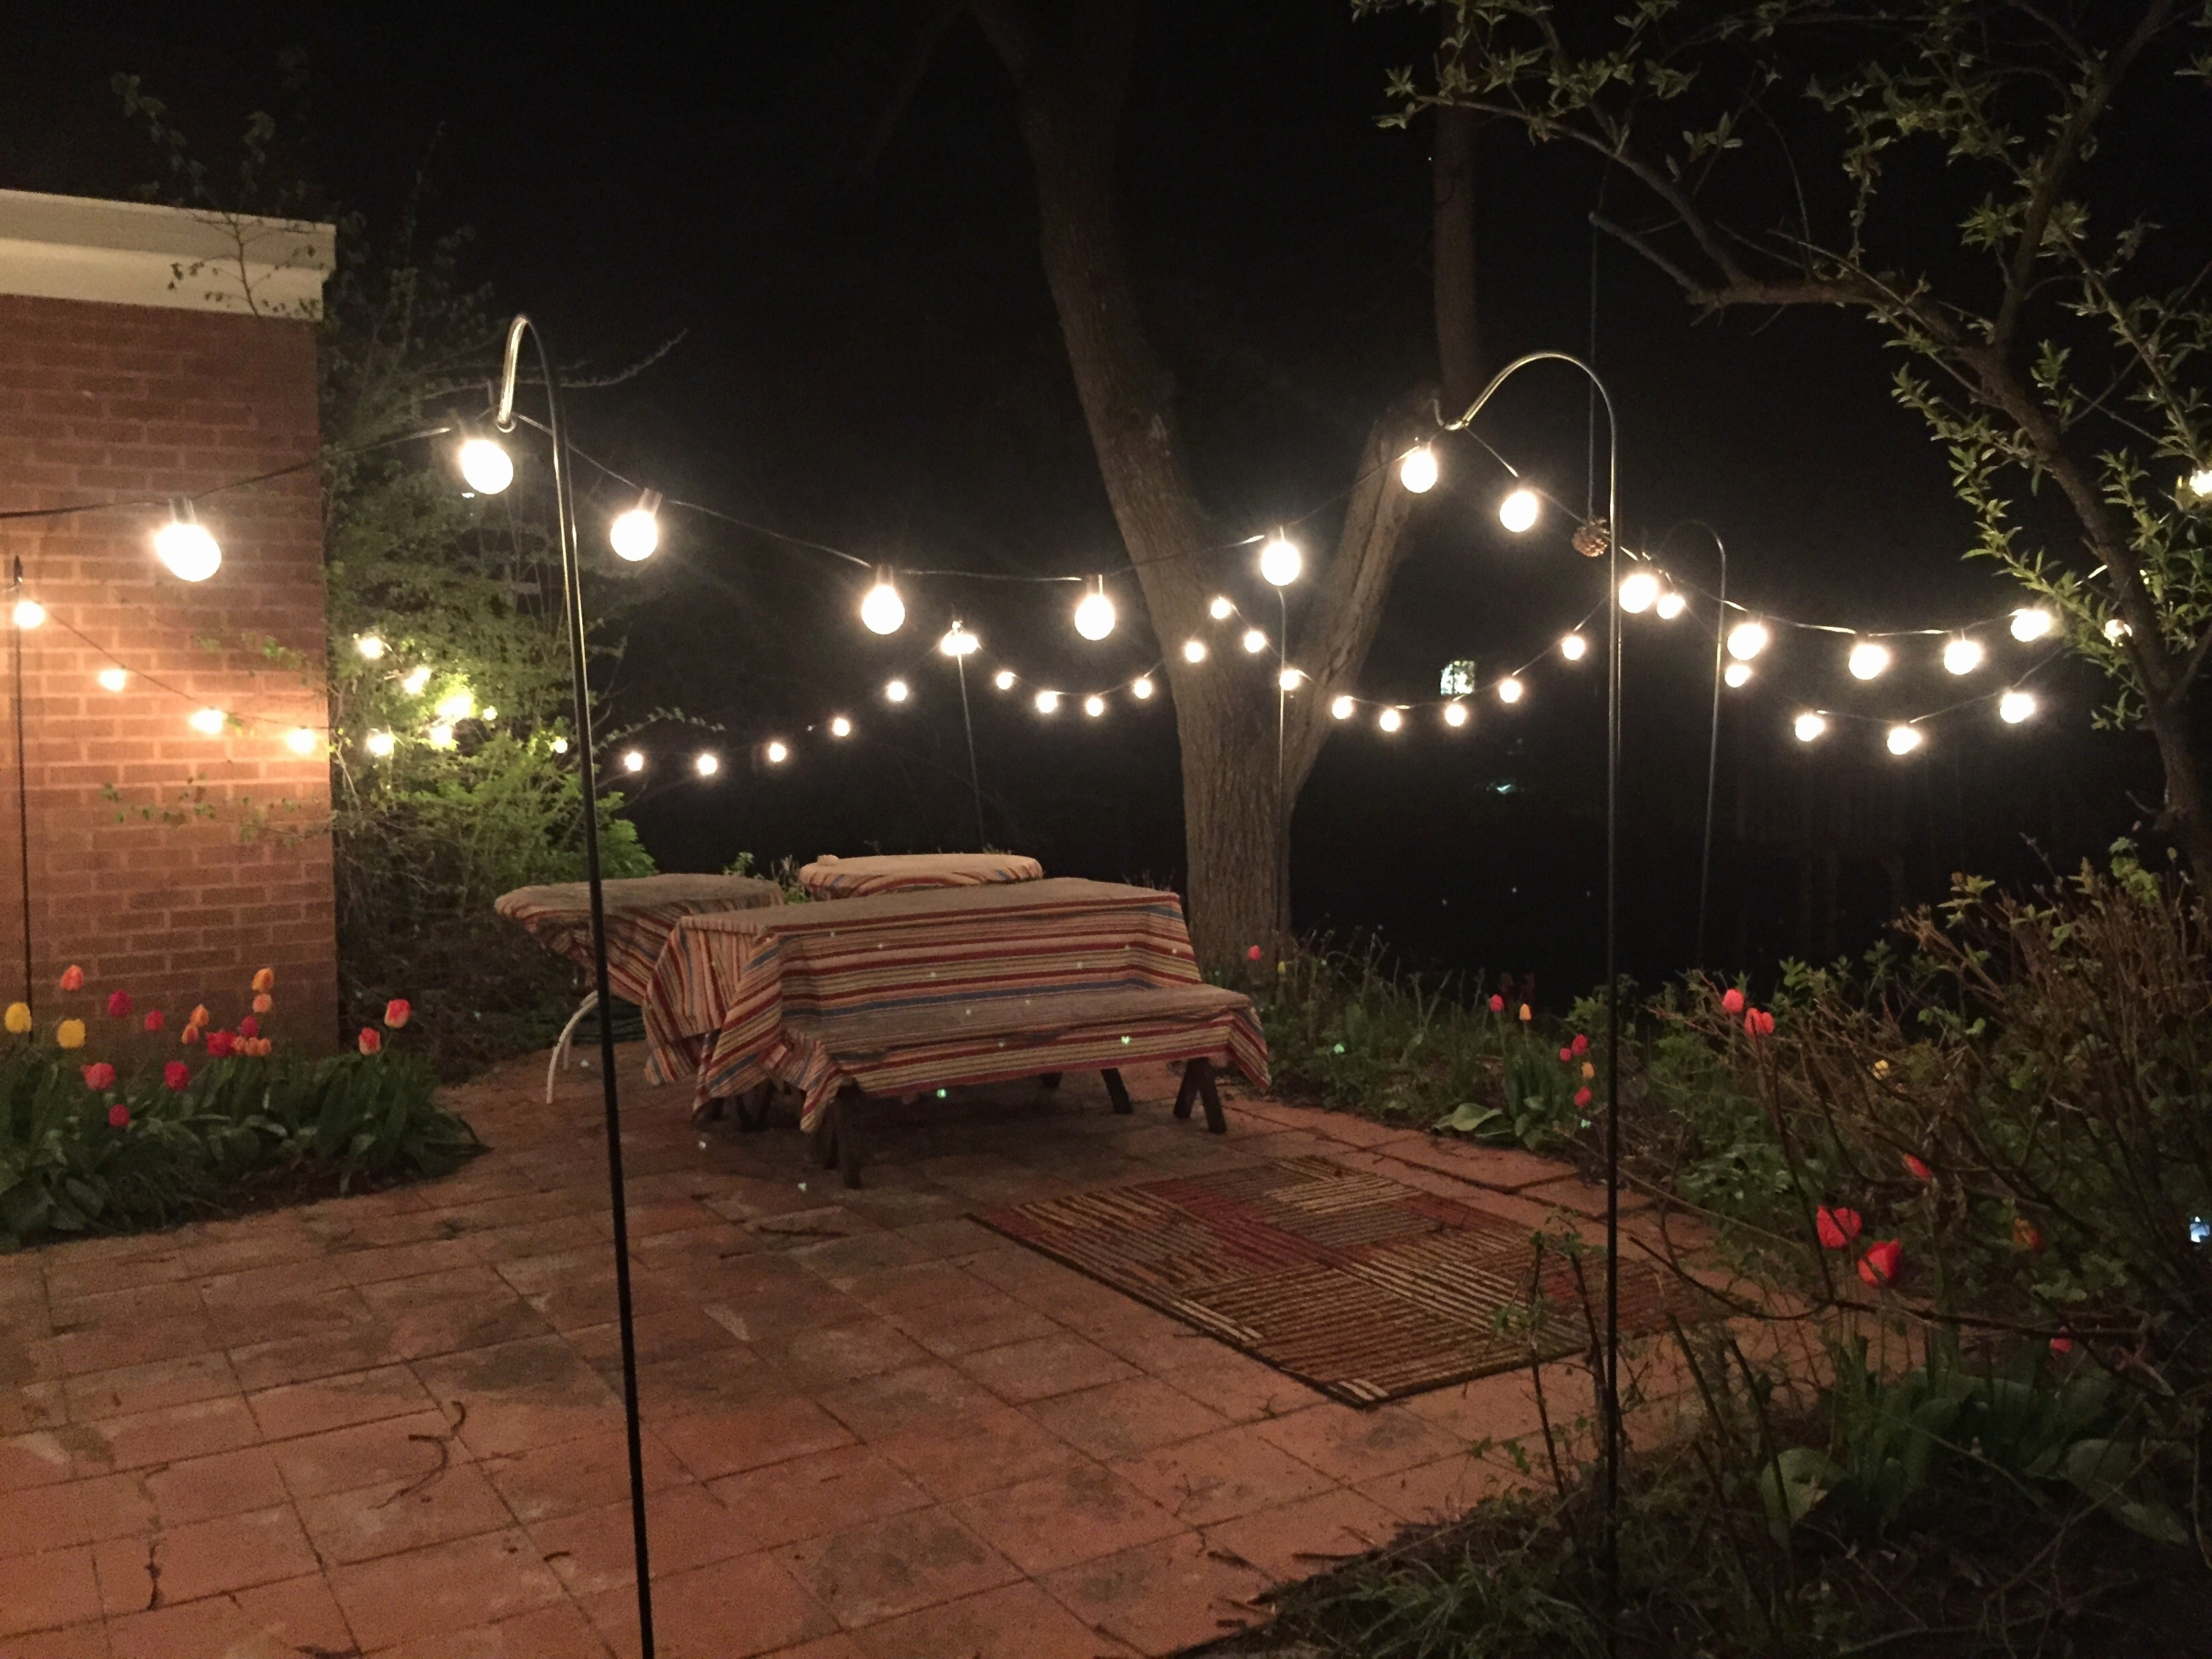 Lighting : Outdoor String Lights Ideas Target Threshold Hanging With Widely Used Outdoor Hanging Lights At Target (View 2 of 20)